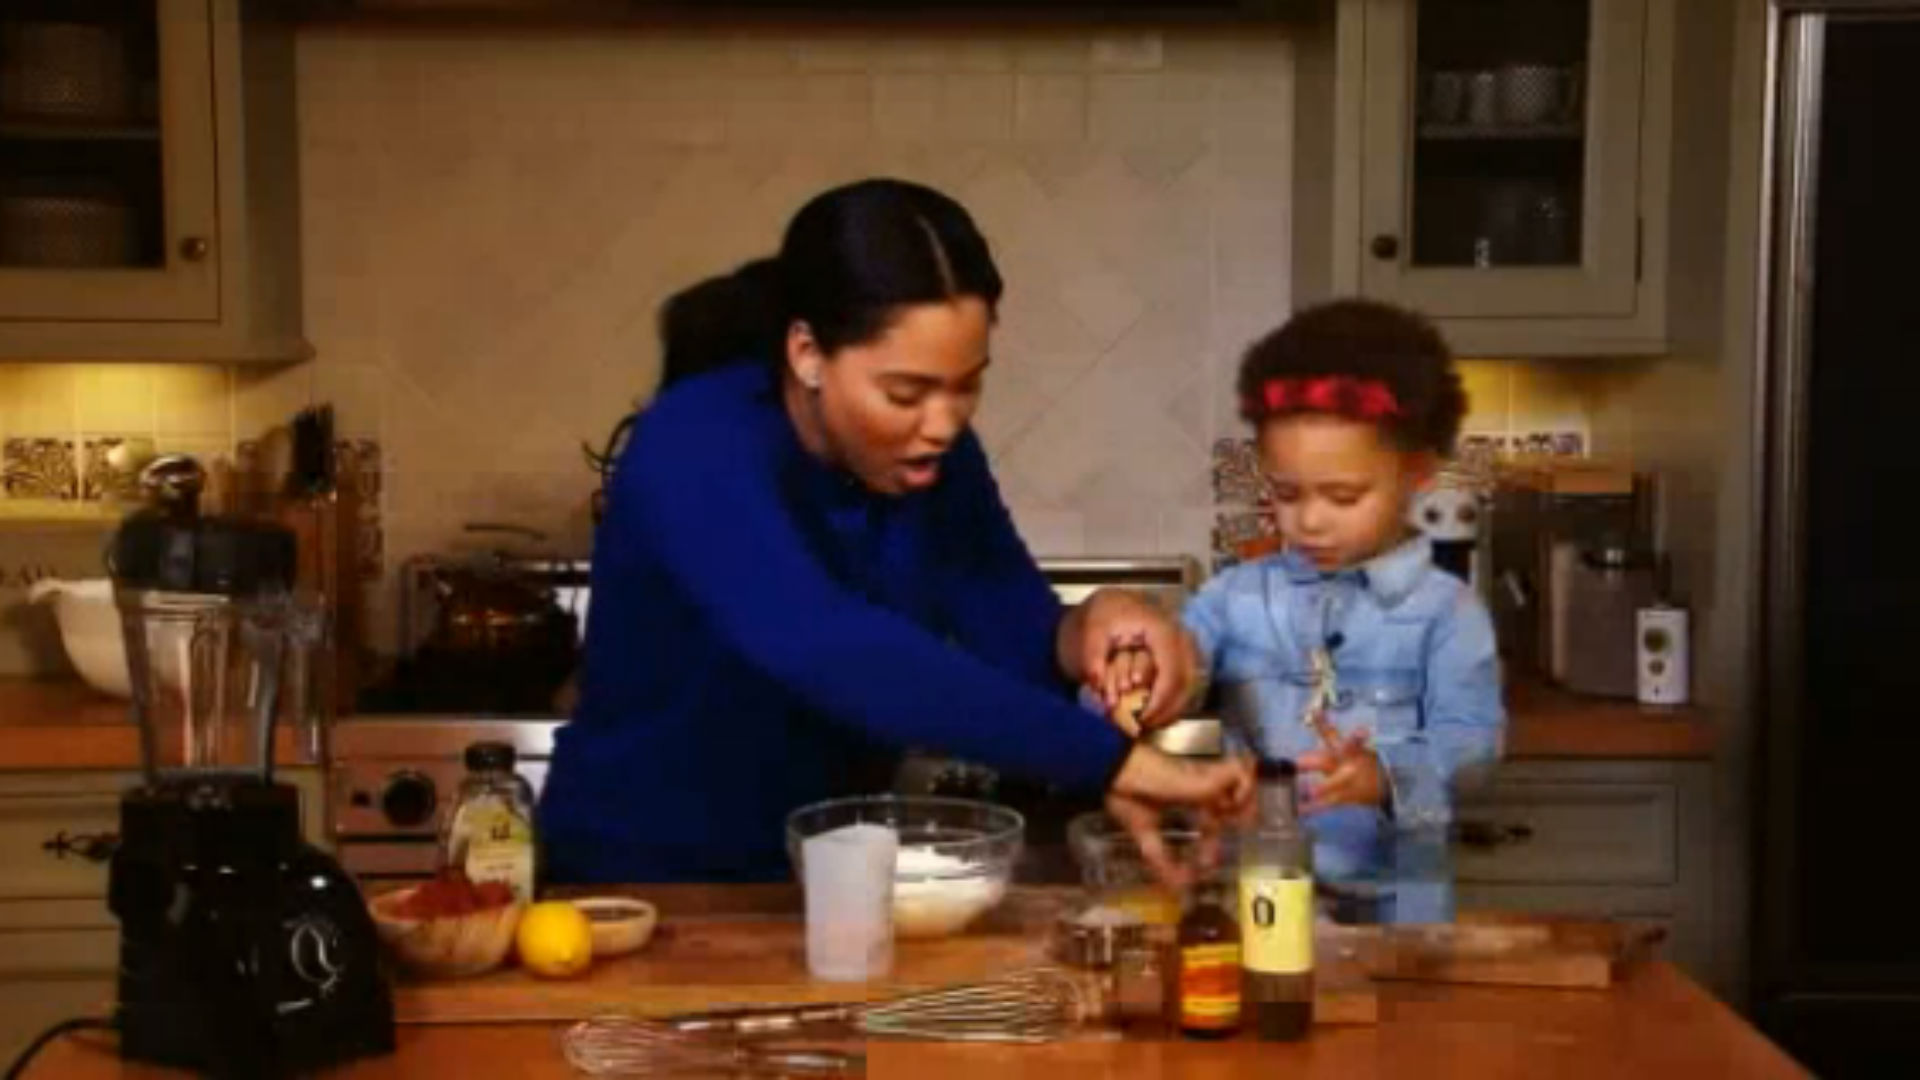 Stephen Curry's daughter Riley helps her mom with cooking show